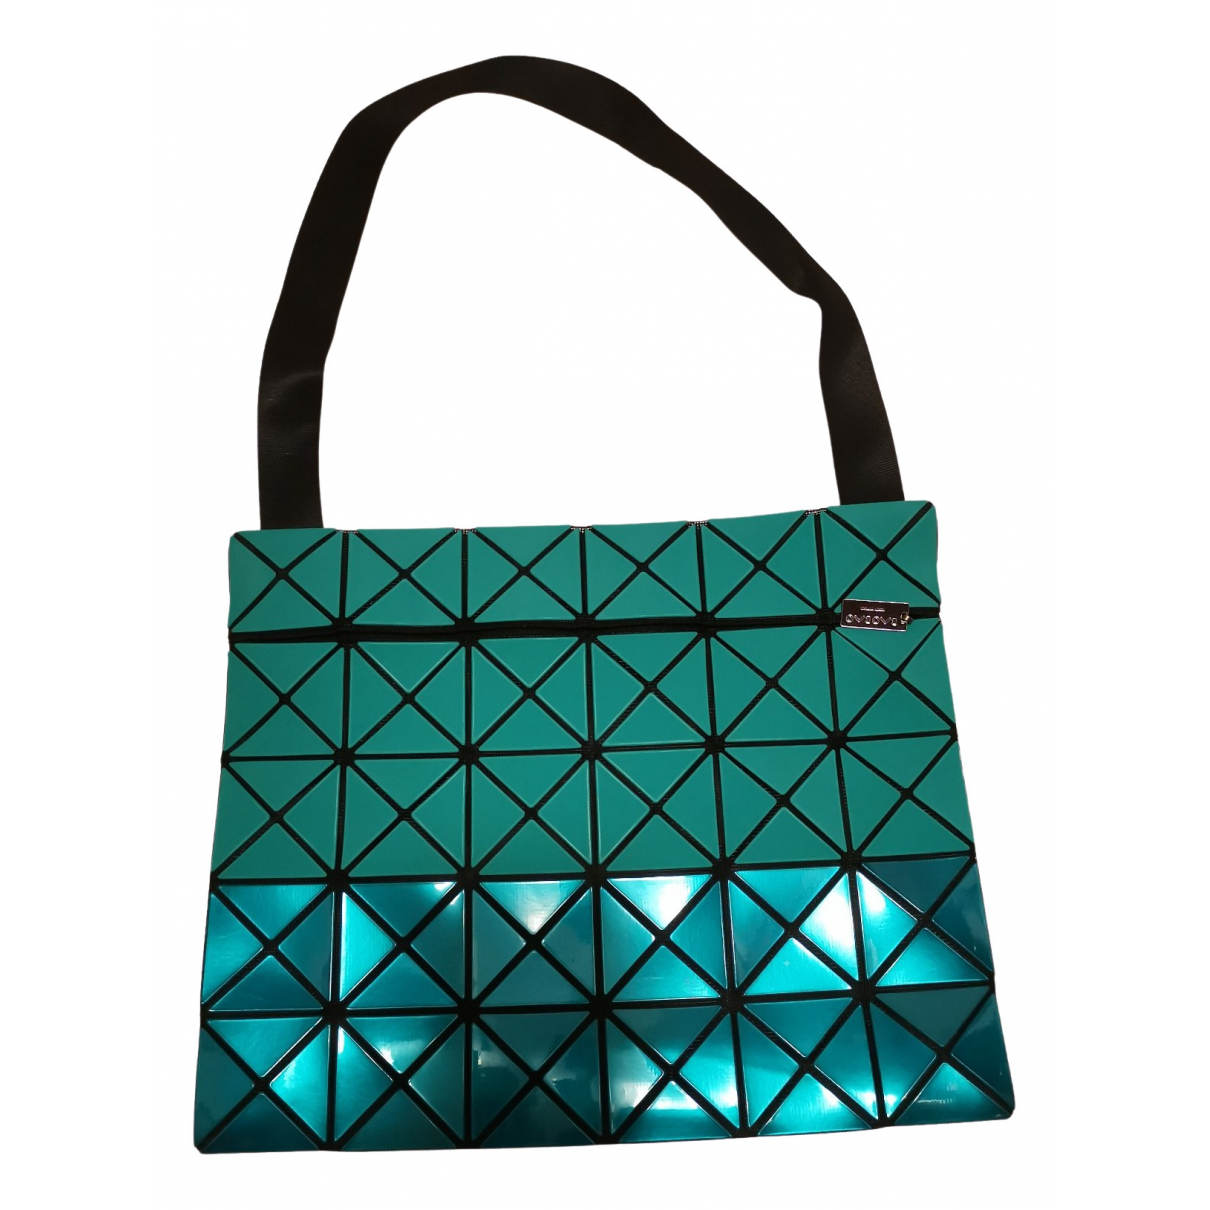 Issey Miyake - Sac a main   pour femme - turquoise